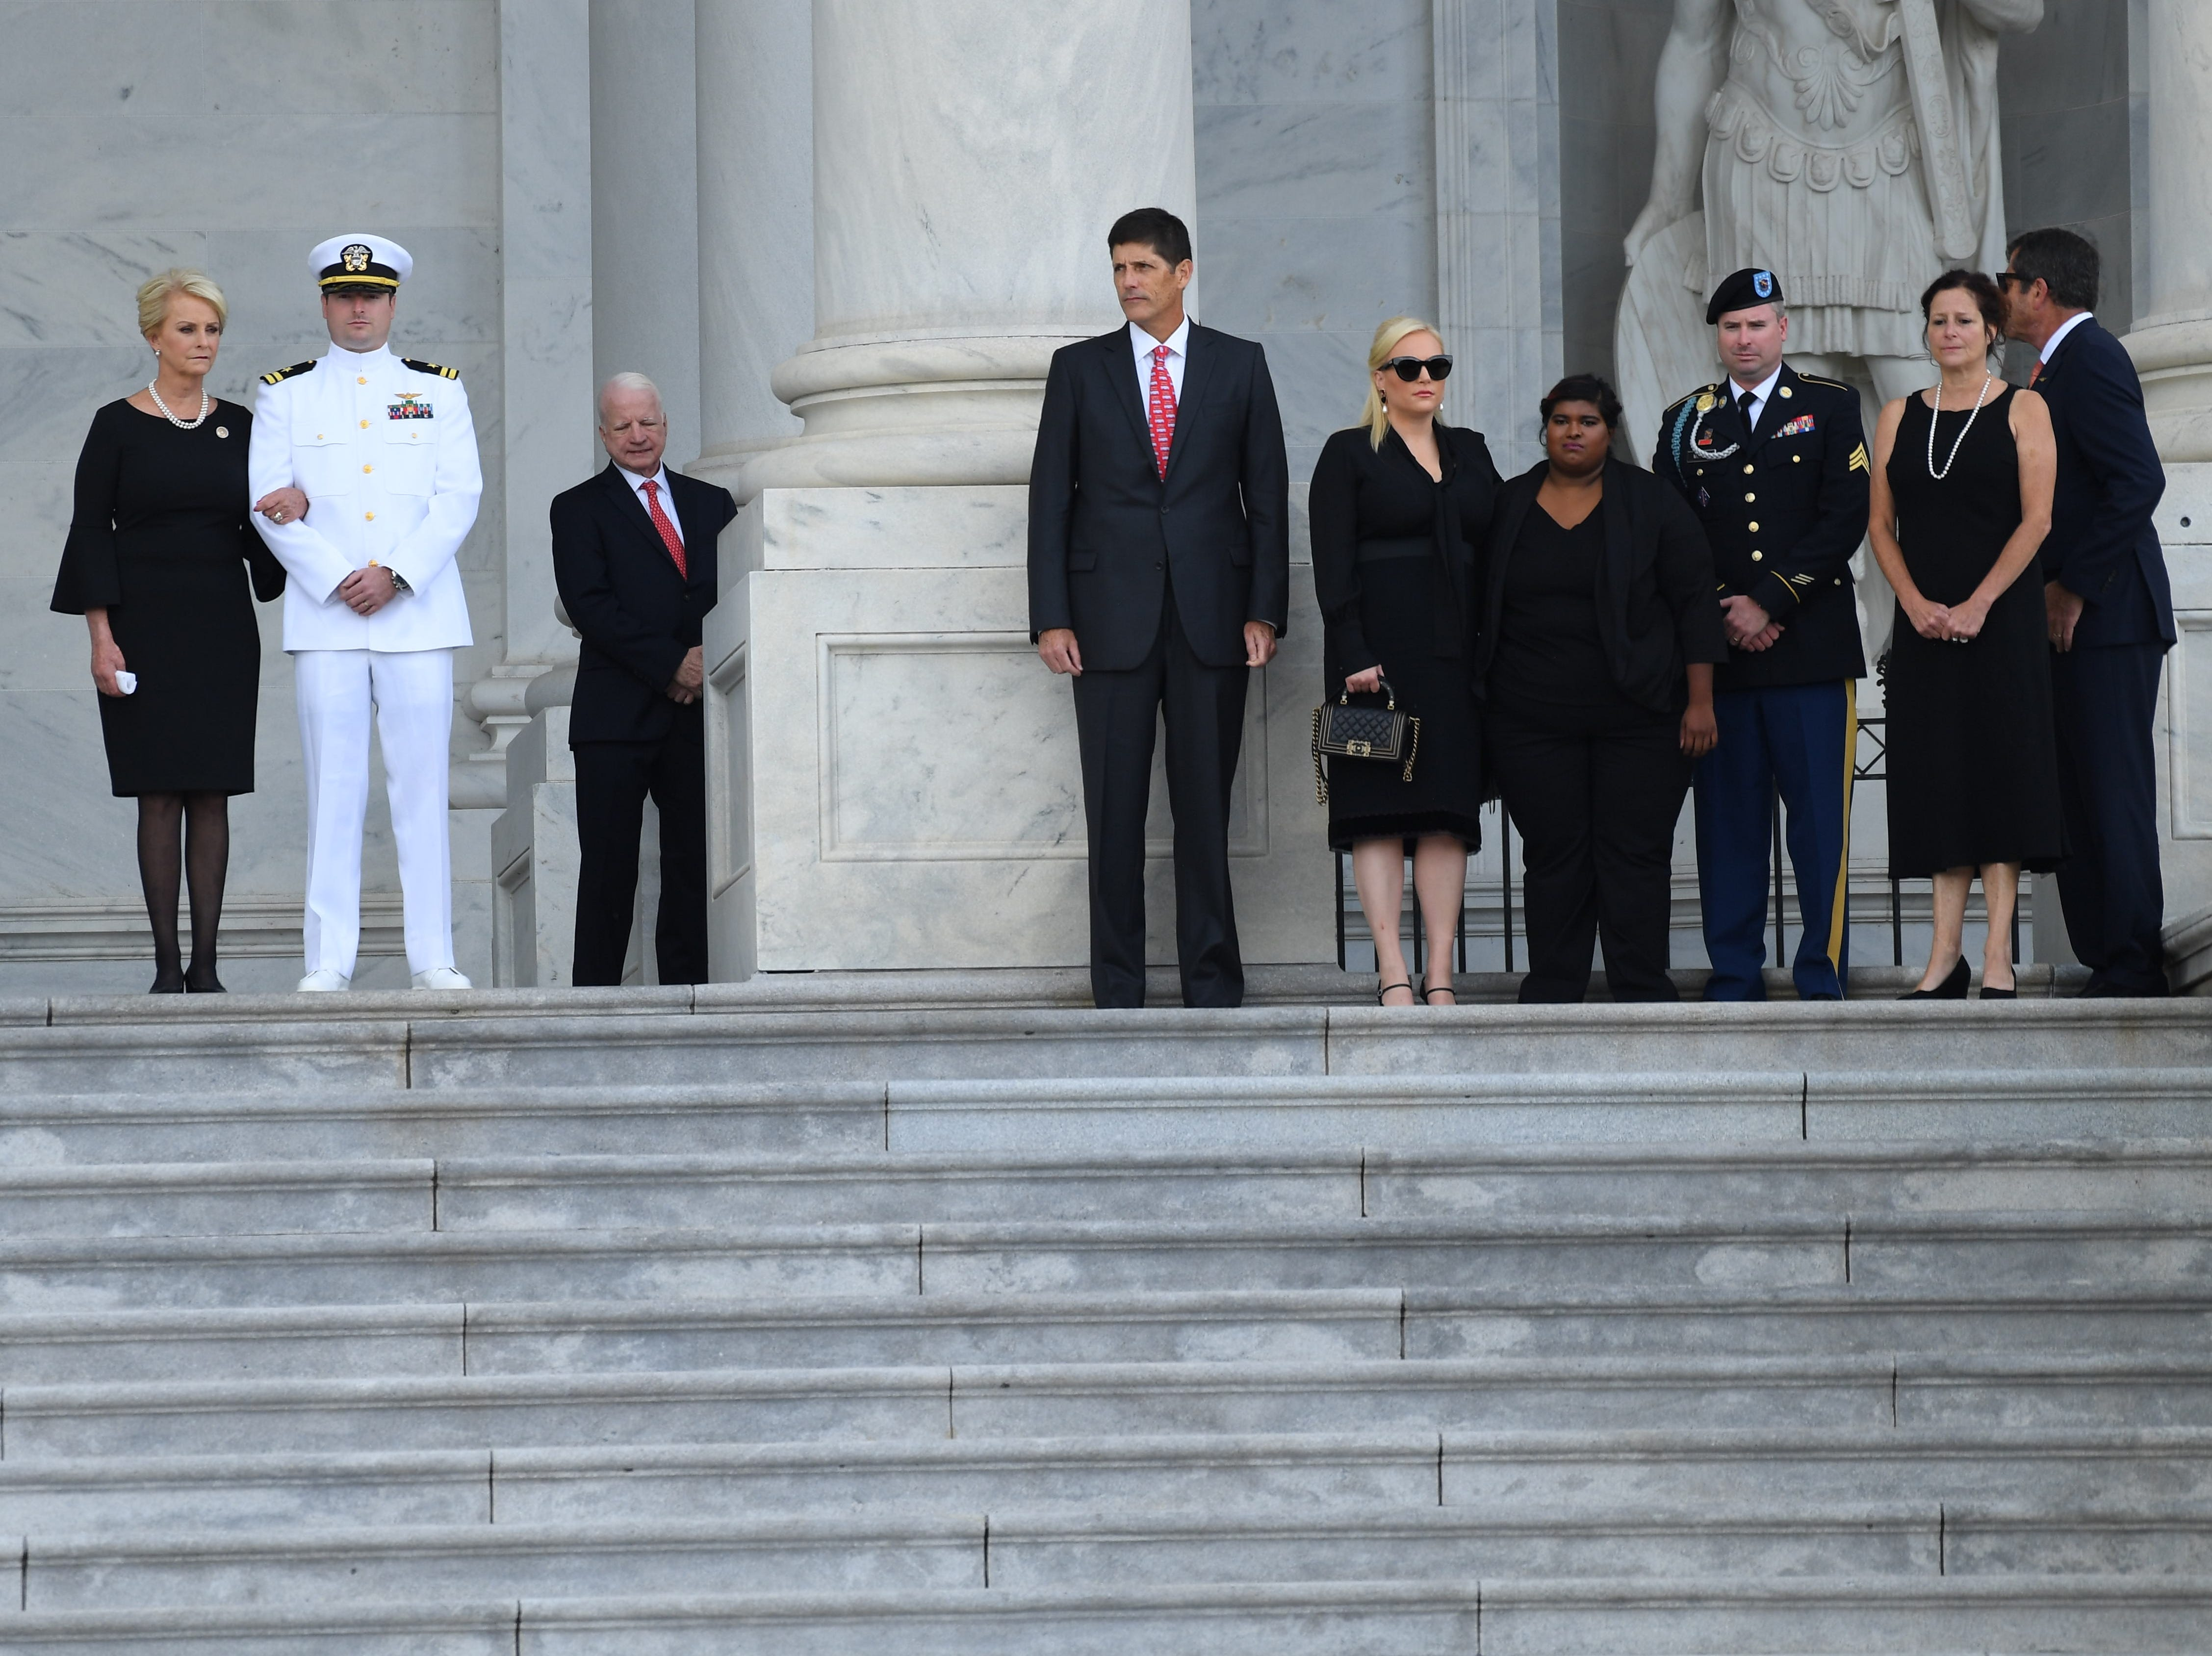 The family of Sen. John McCain waits for the senator's body to arrive at the U.S. Capitol on Aug. 31, 2018 in Washington.